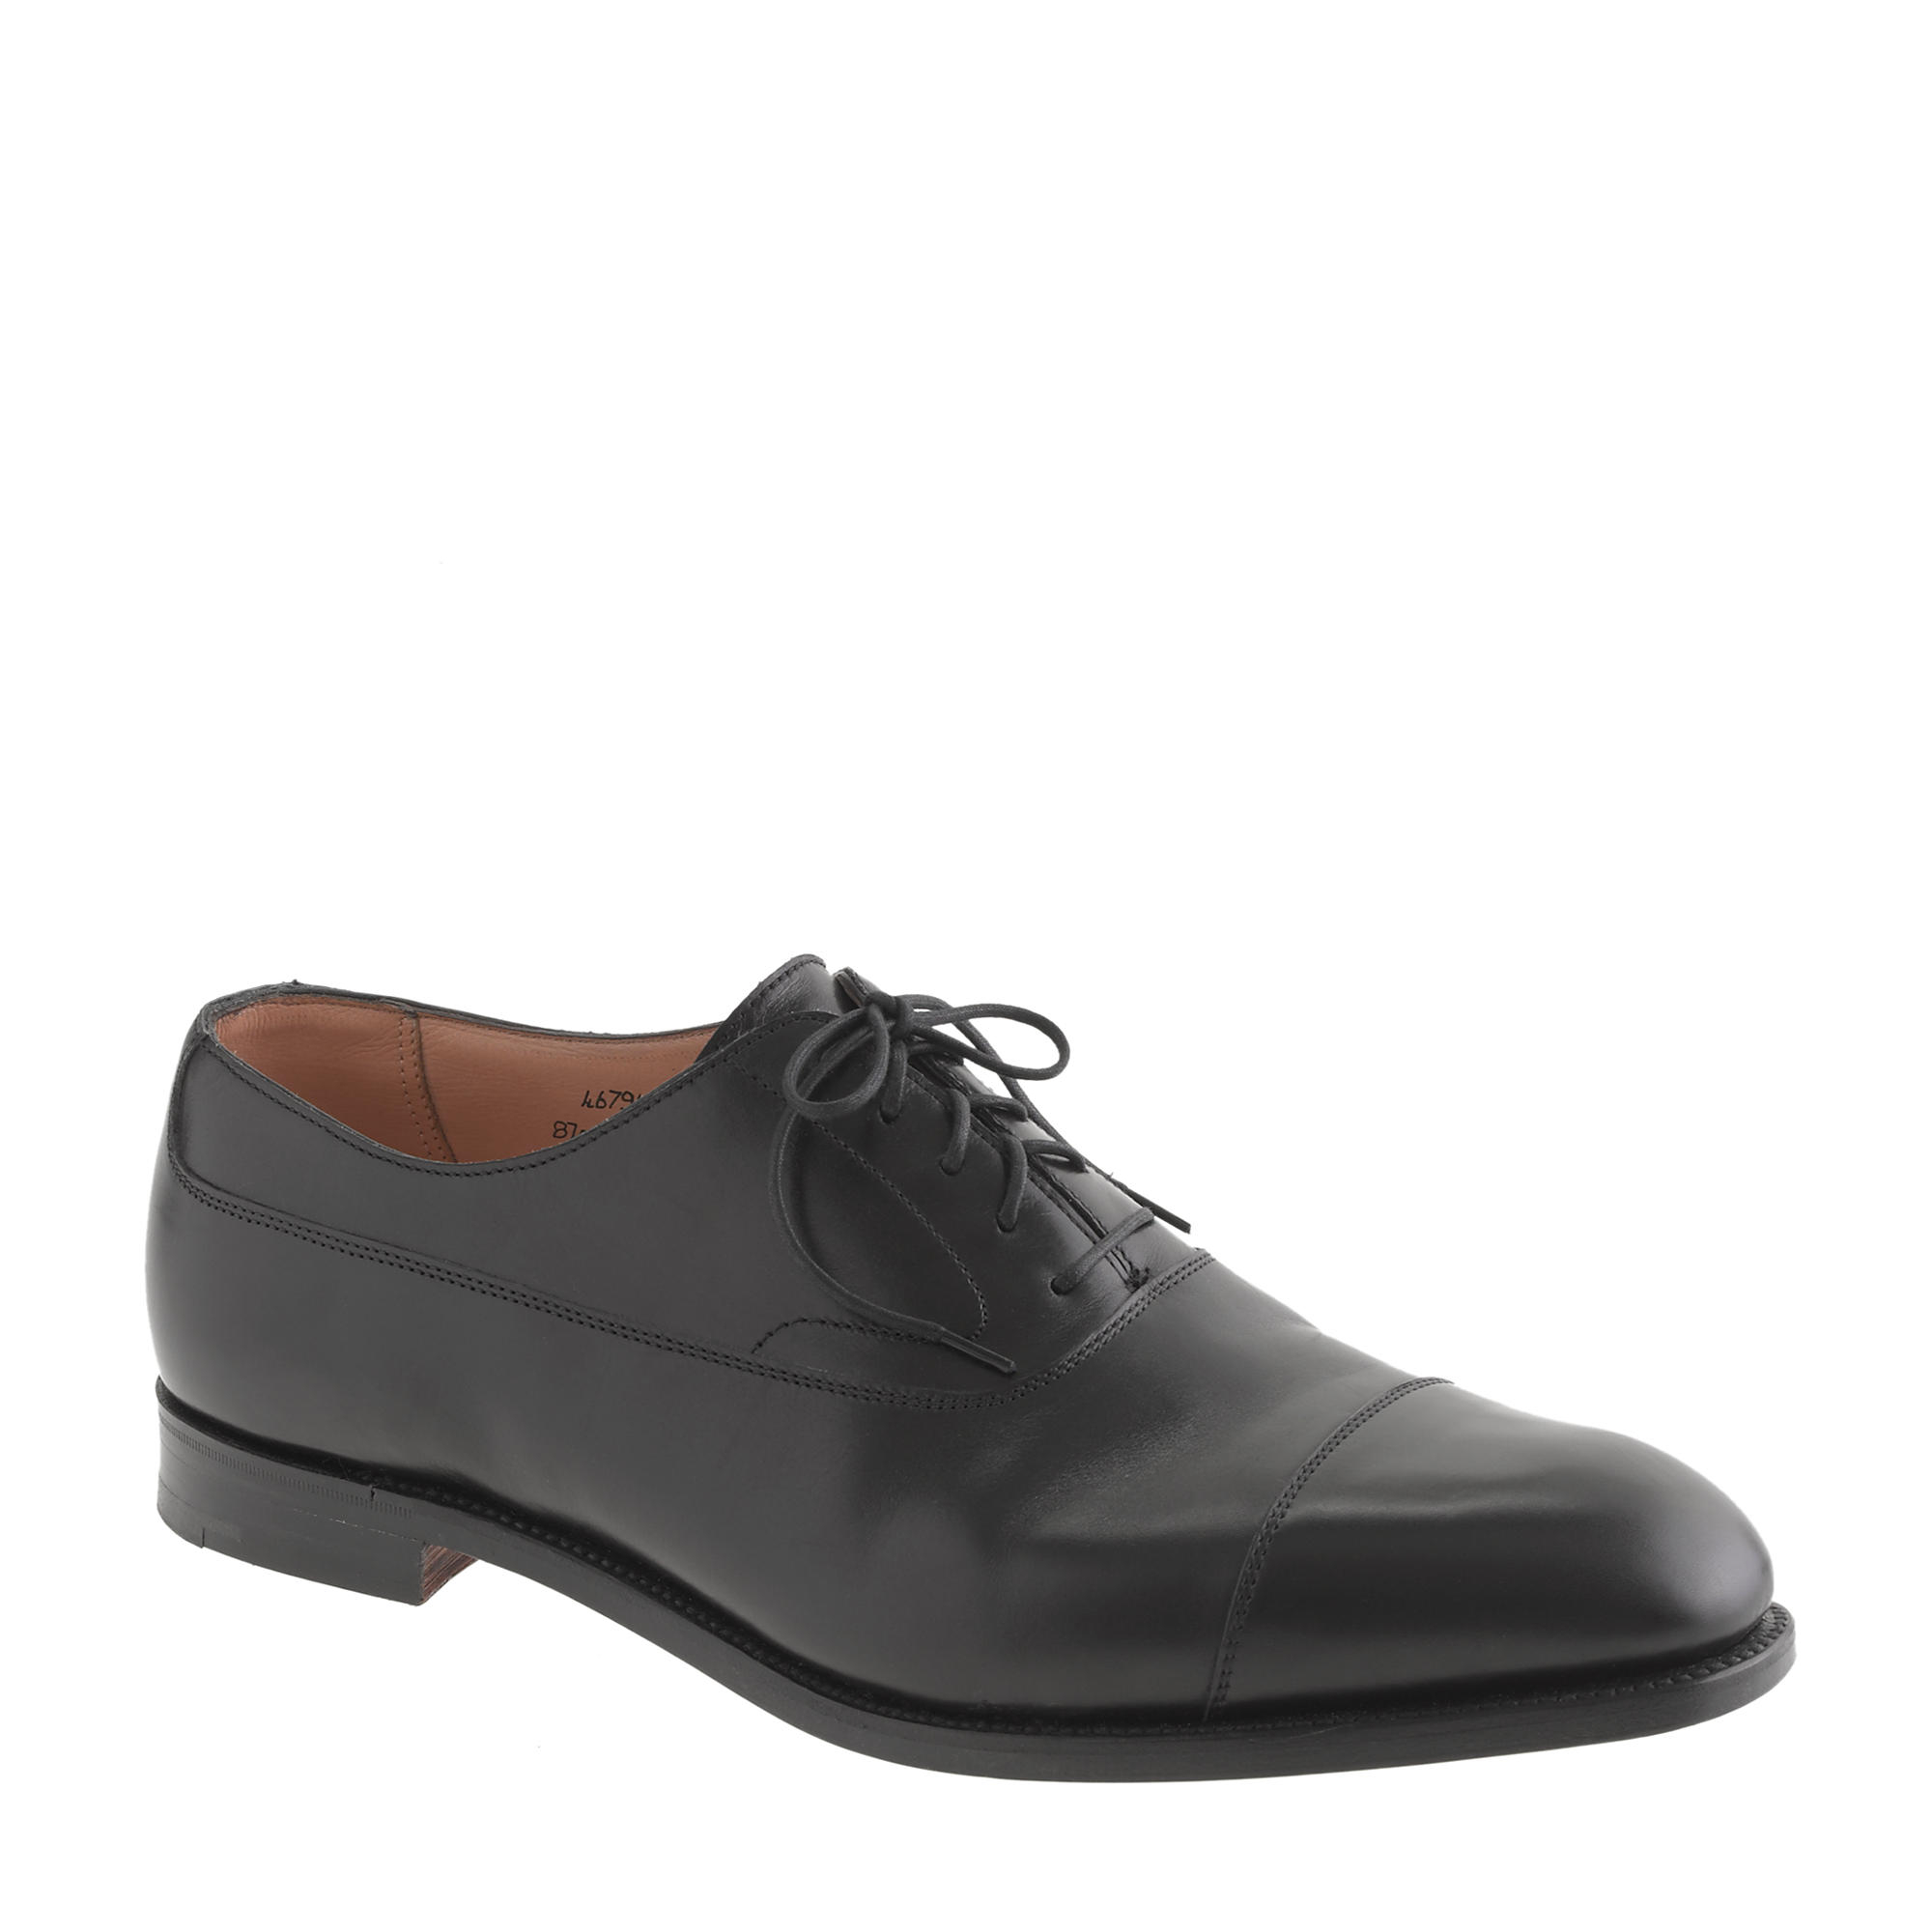 Balmoral Shoes For Sale